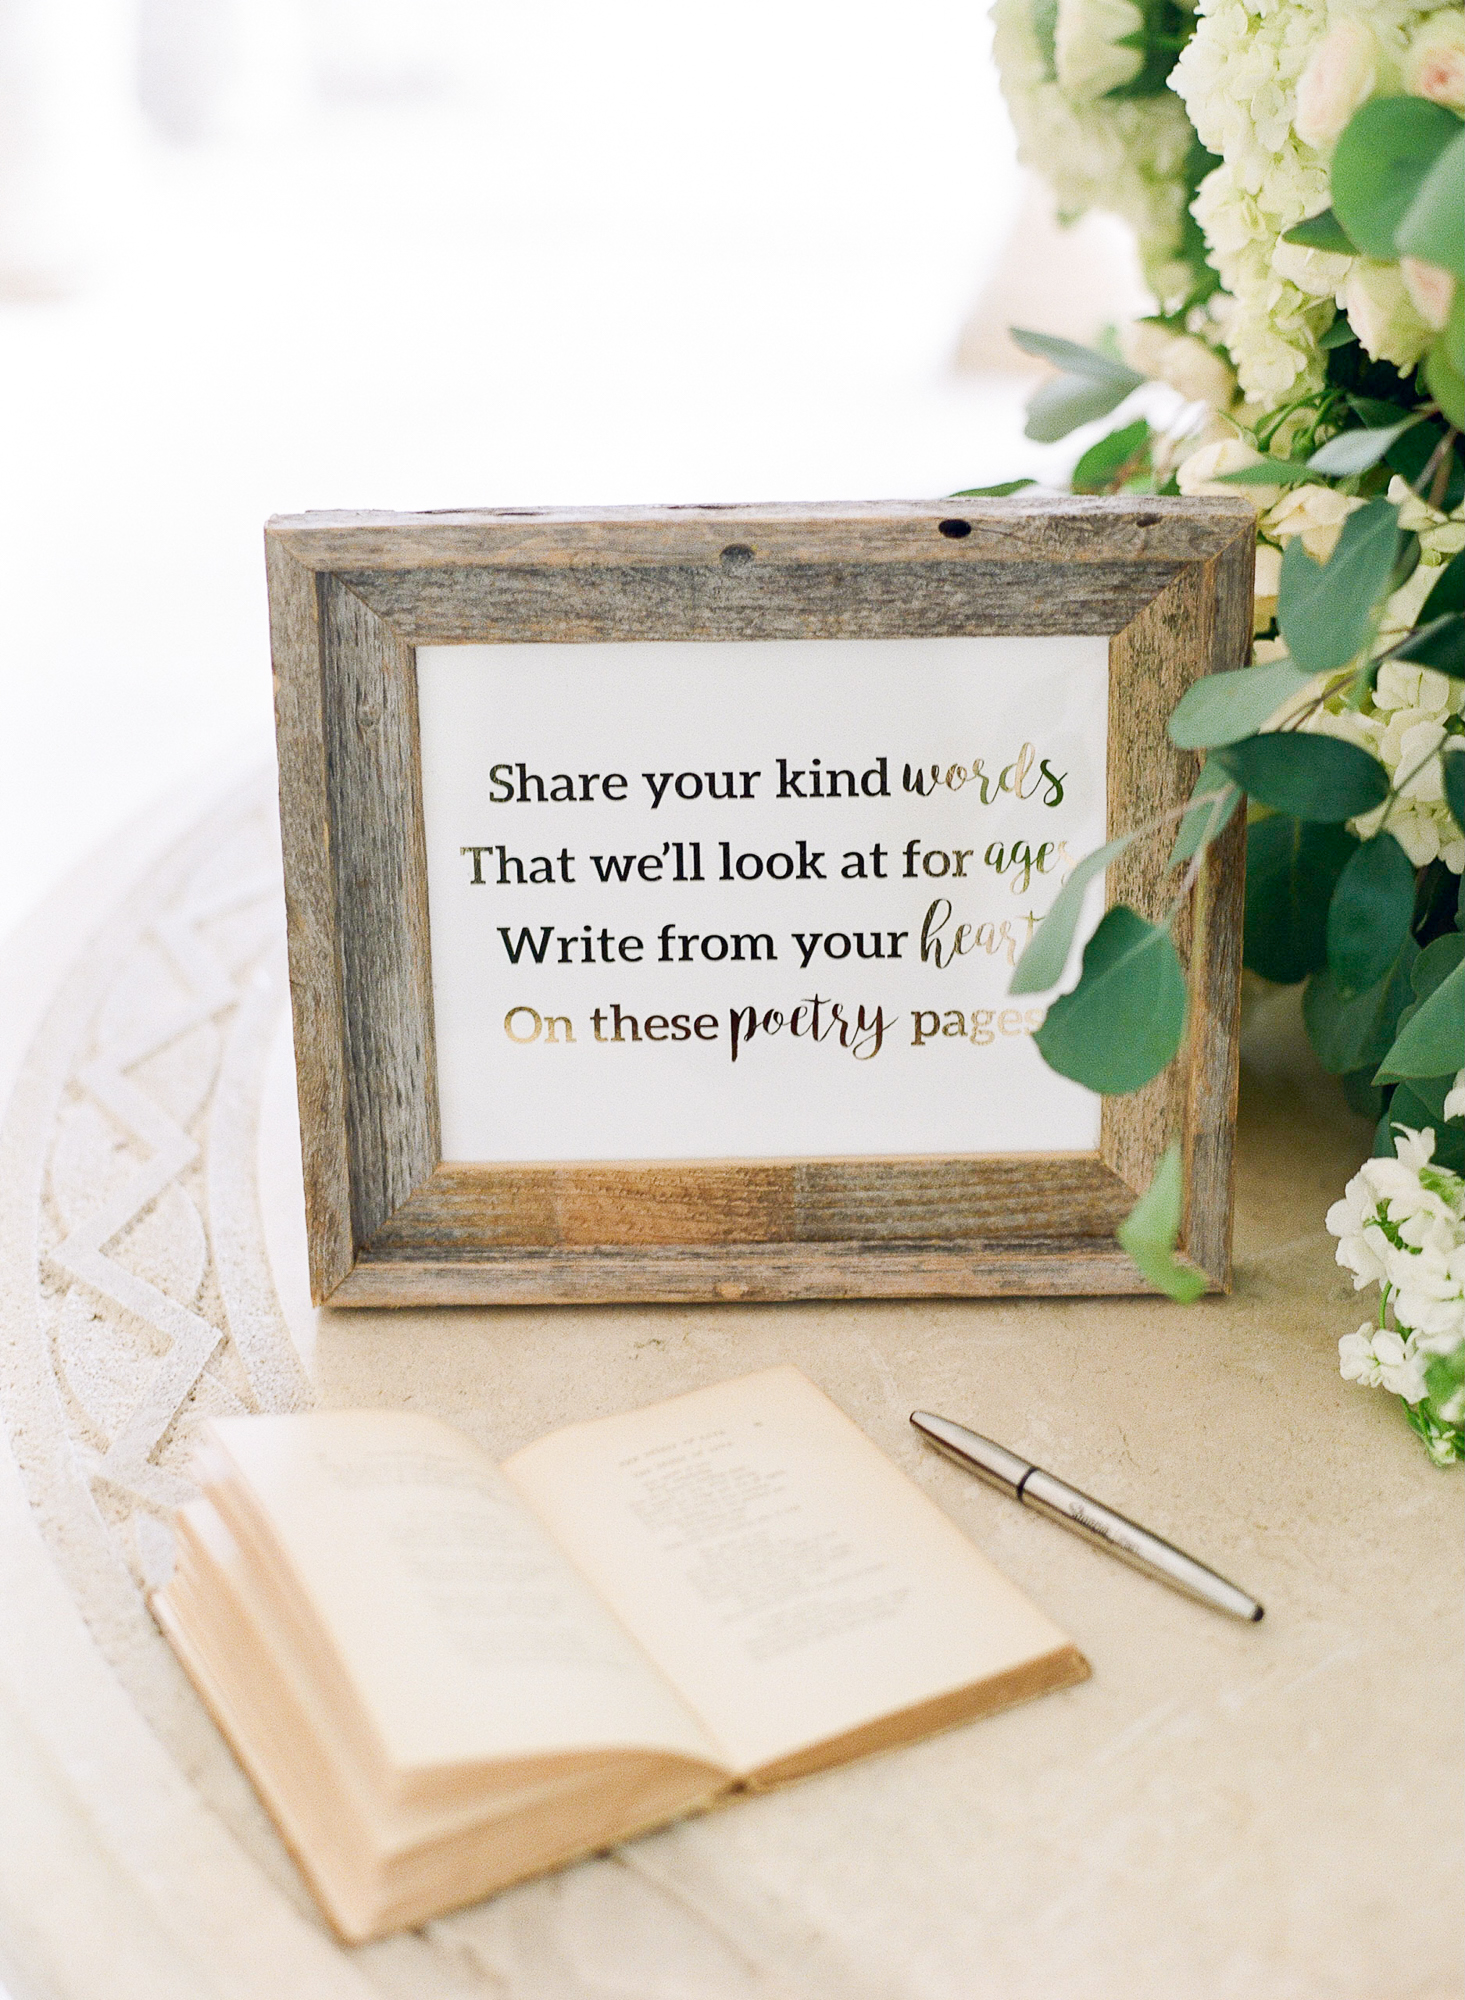 Photo of book and note for guests to write messages as they enter.